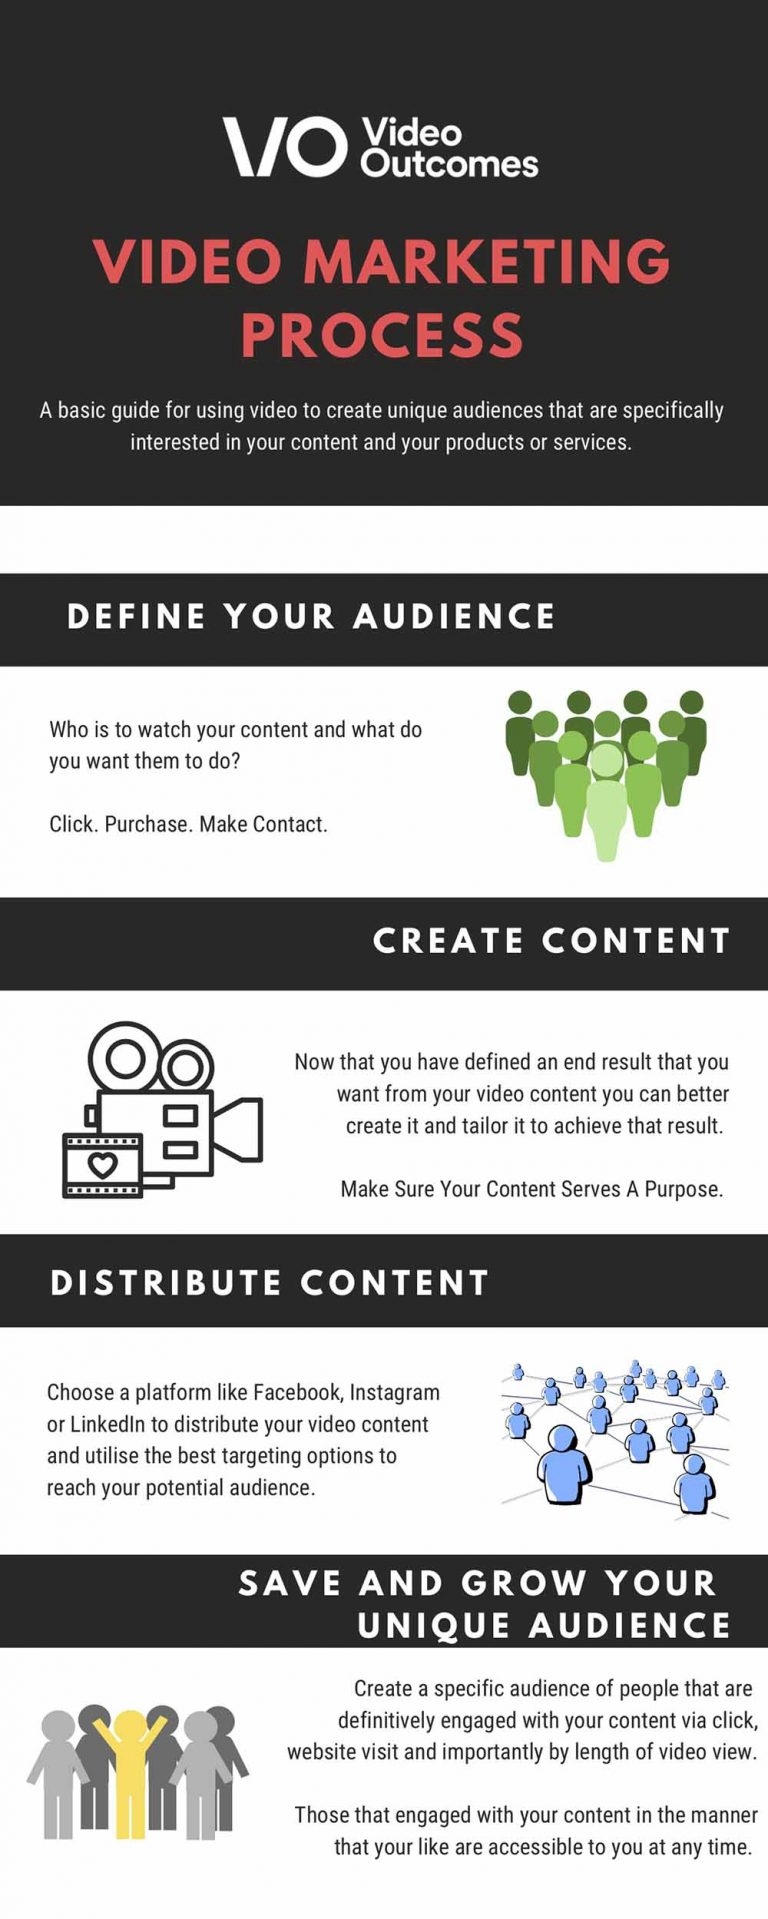 Infographic showing Video Outcomes video marketing process. Displays how to use video content and digital marketing to create unique audiences.